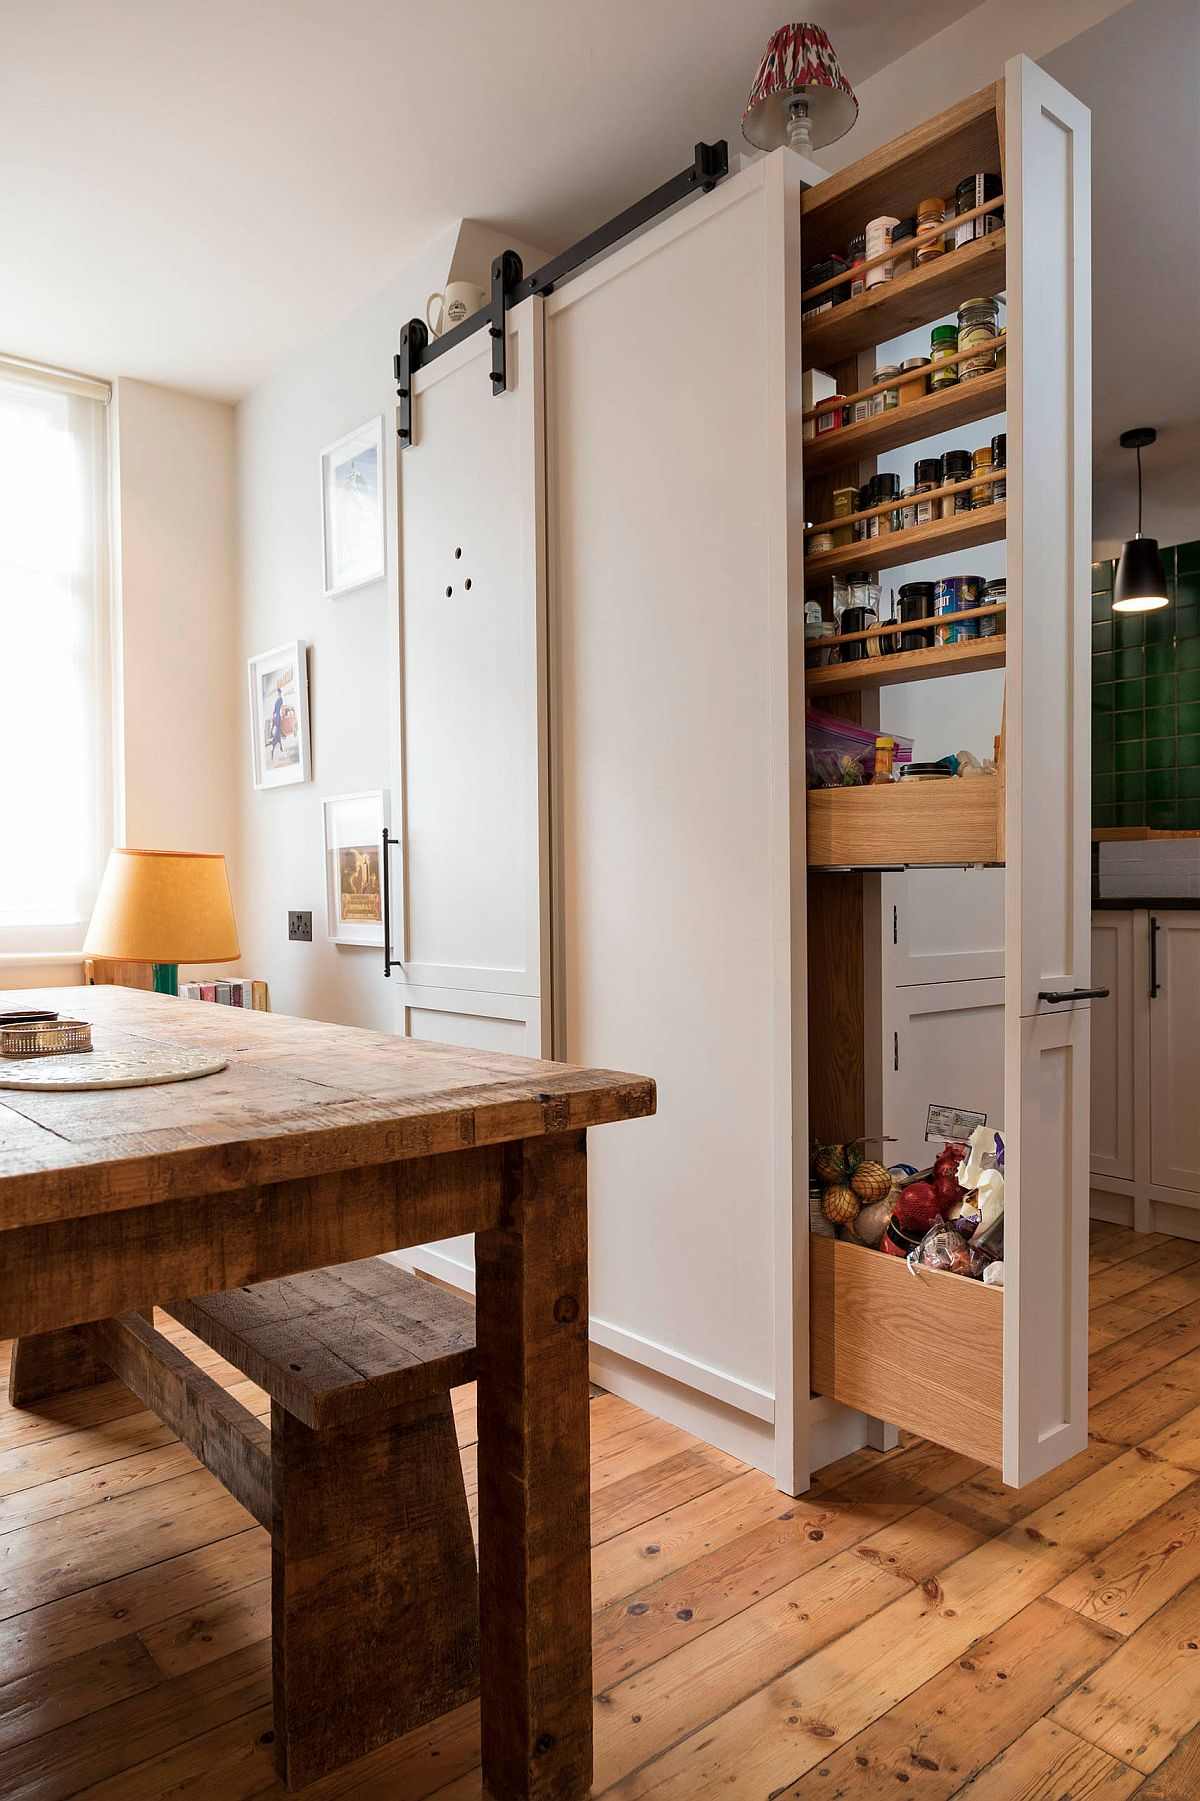 Super-slim-pantry-units-can-be-part-of-any-kitchen-with-ease-11008